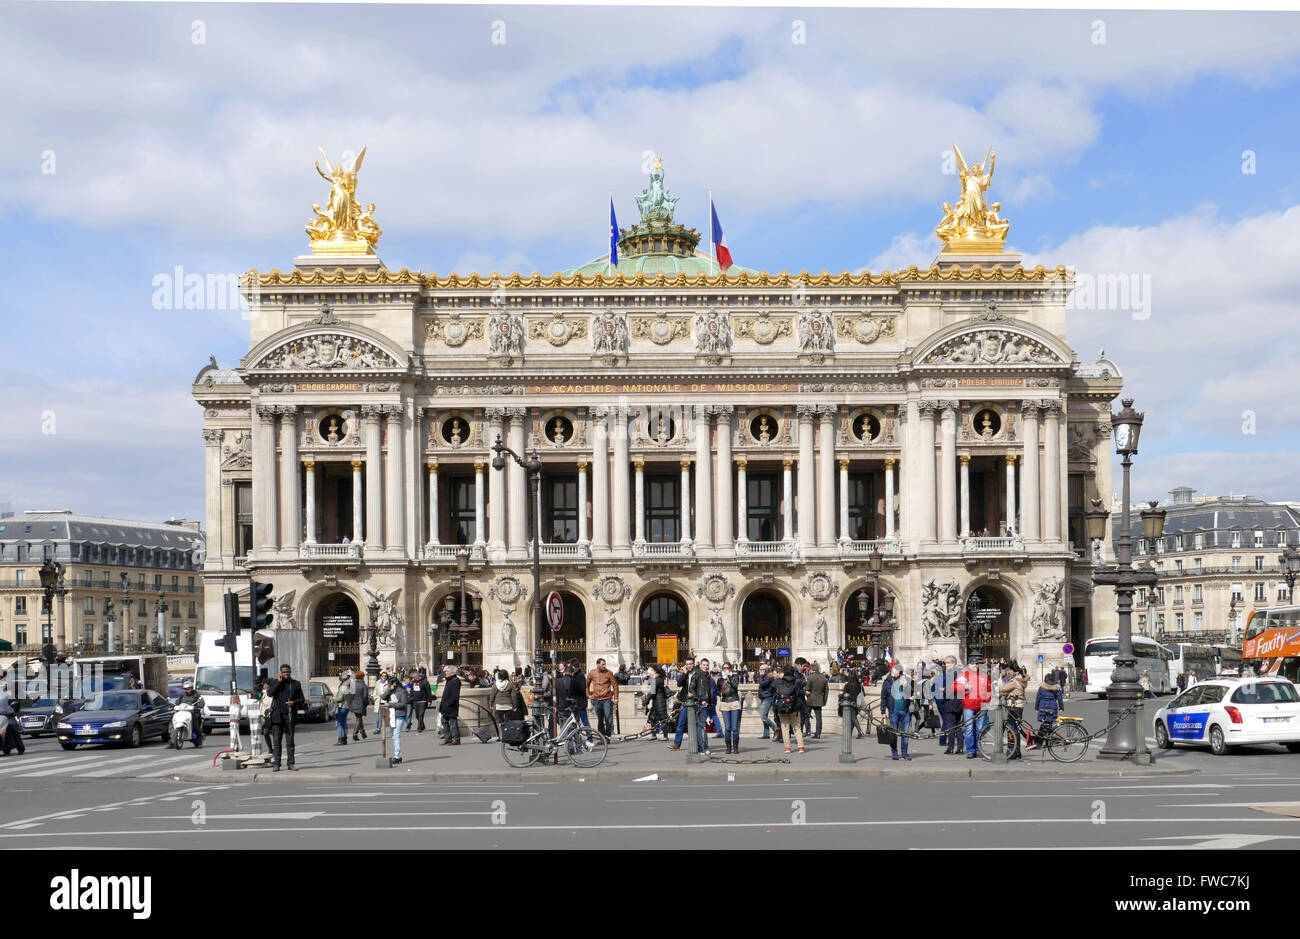 Palais Garnier - Paris Opera House, France. - Stock Image